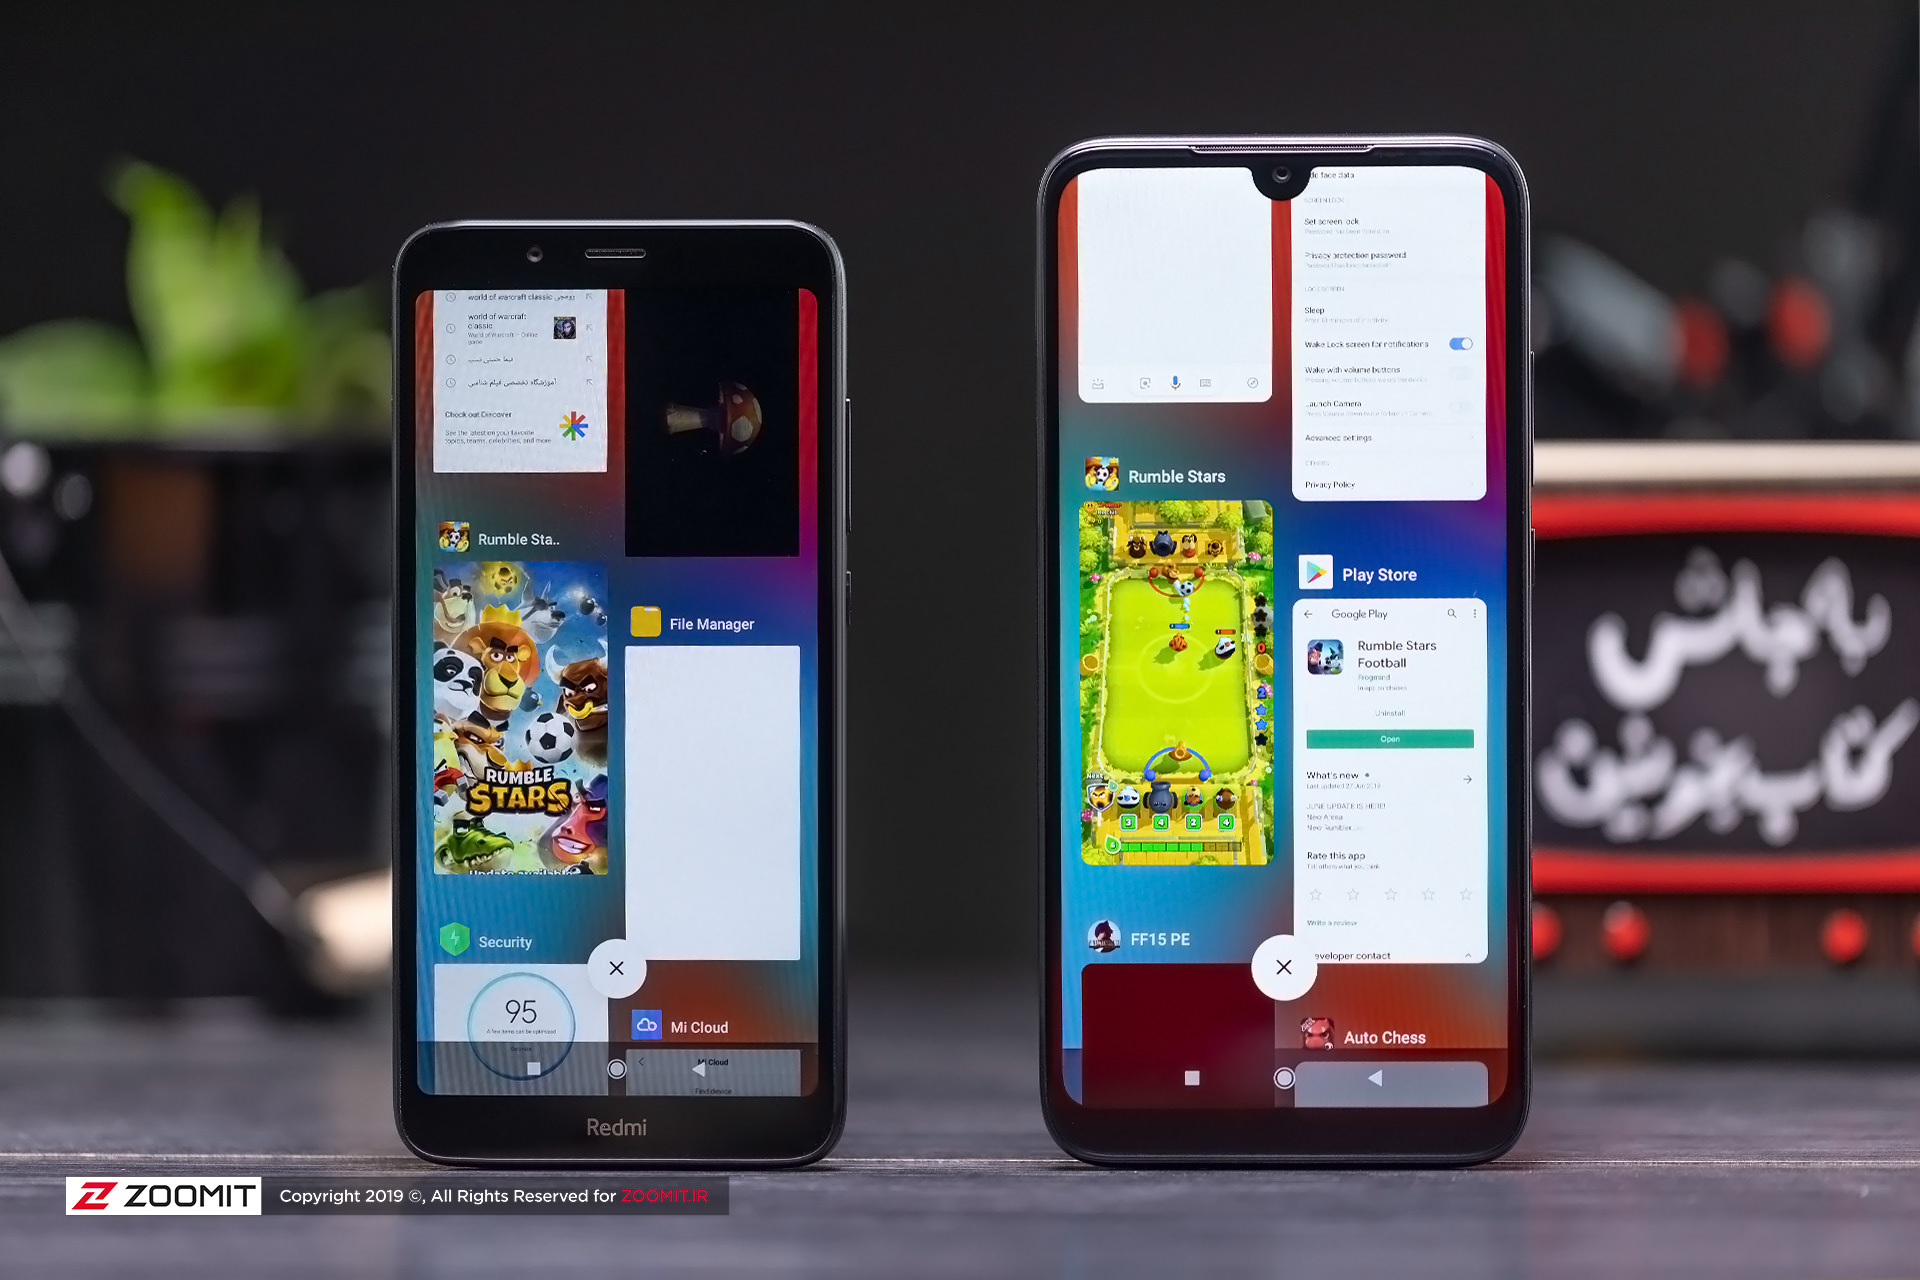 ردمی ۷ و ردمی ۷ ای شیائومی / xiaomi redmi 7 and redmi 7a